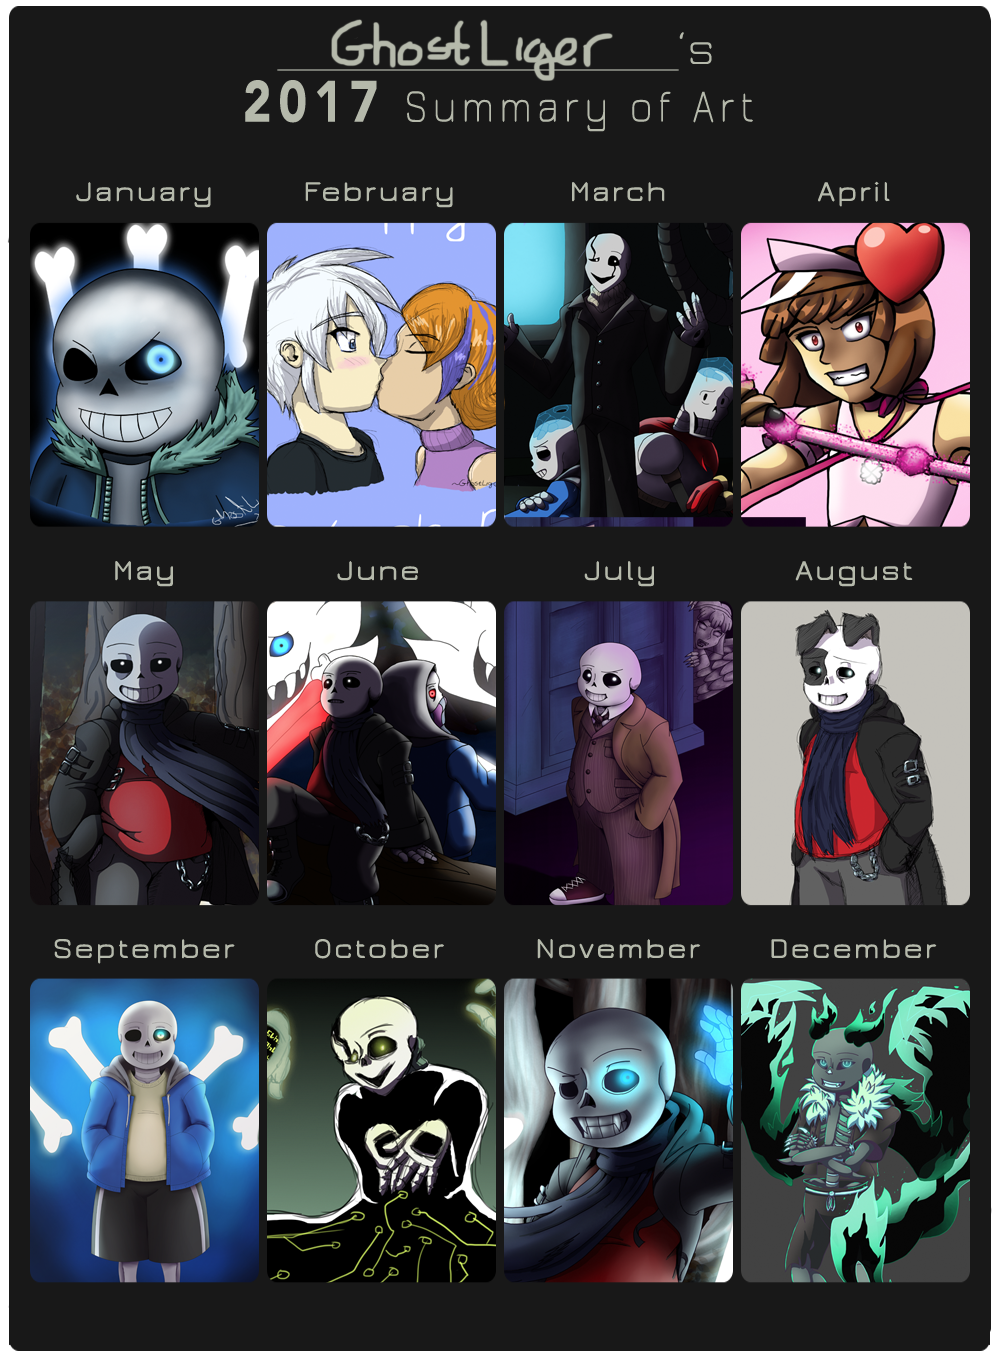 AKA the year Ghostie discovered Undertale. by GhostLiger